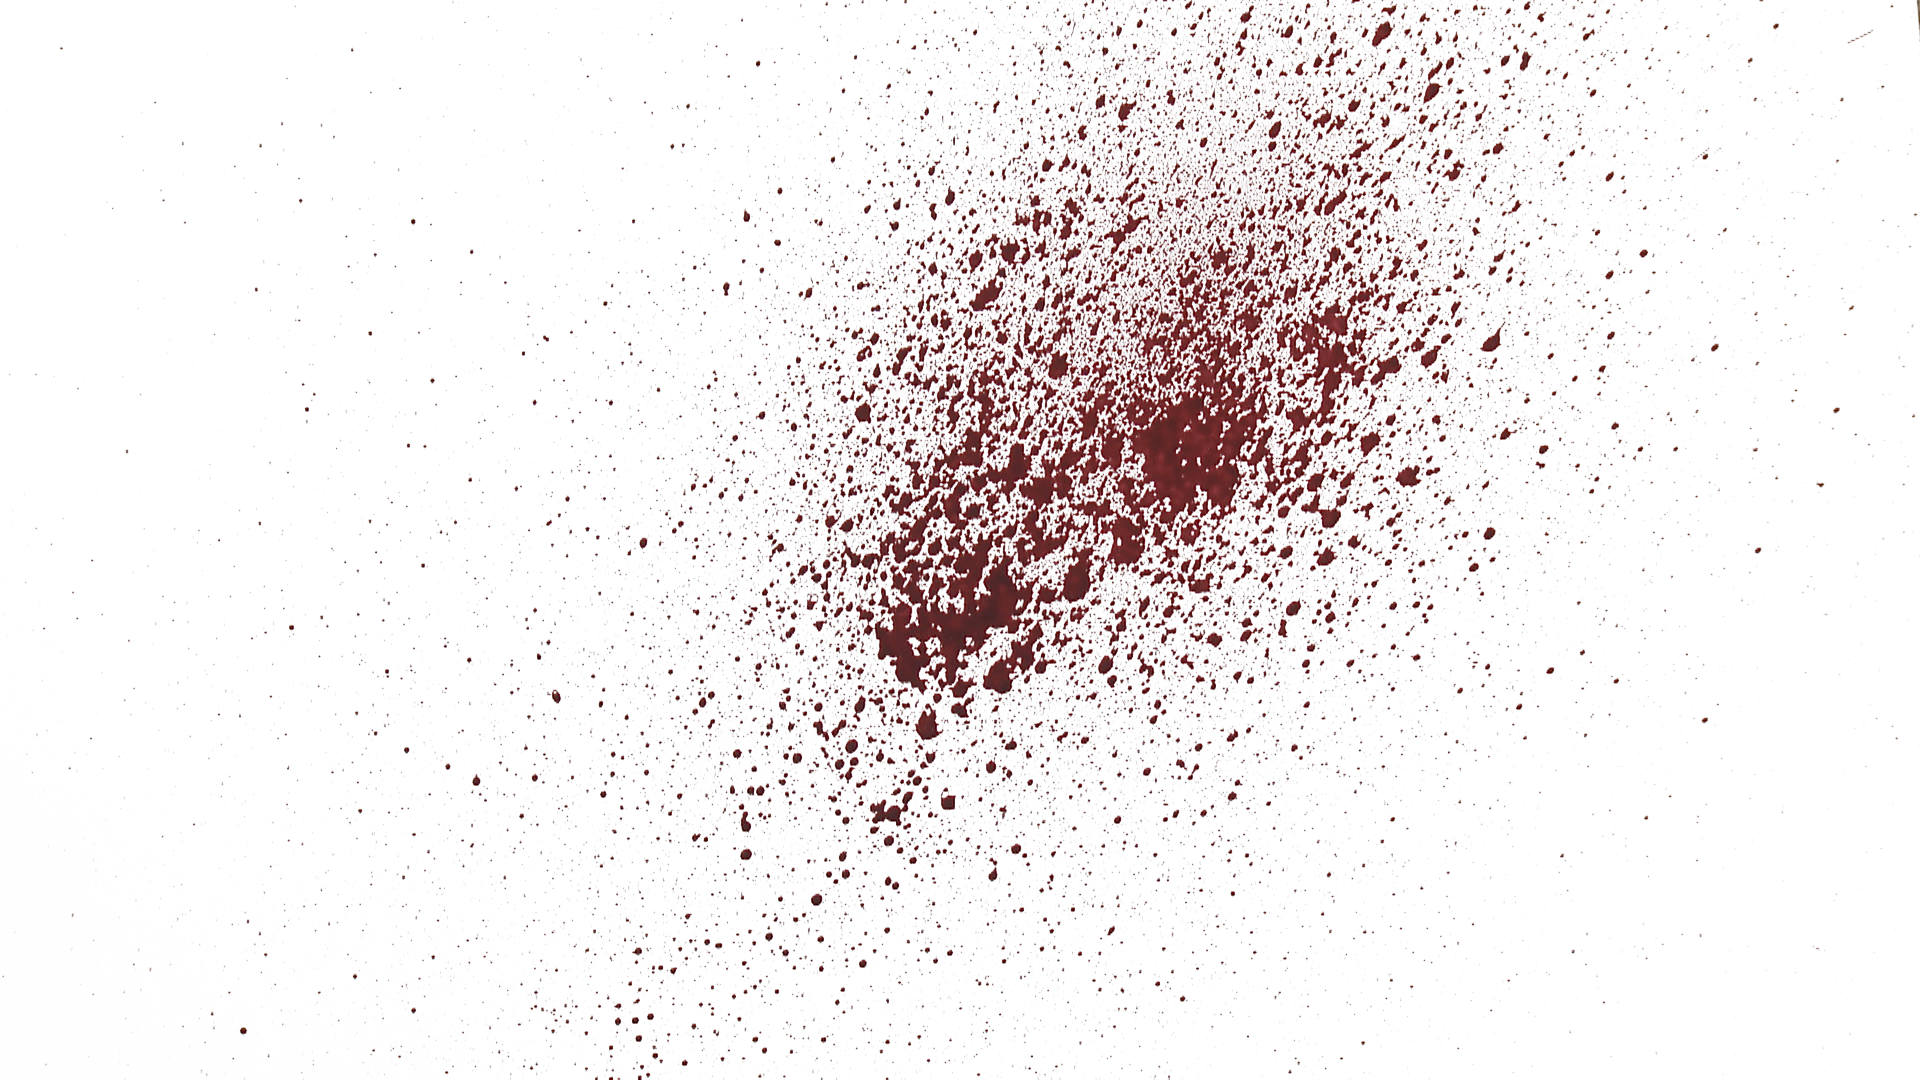 Blood spray png. Images free icons and